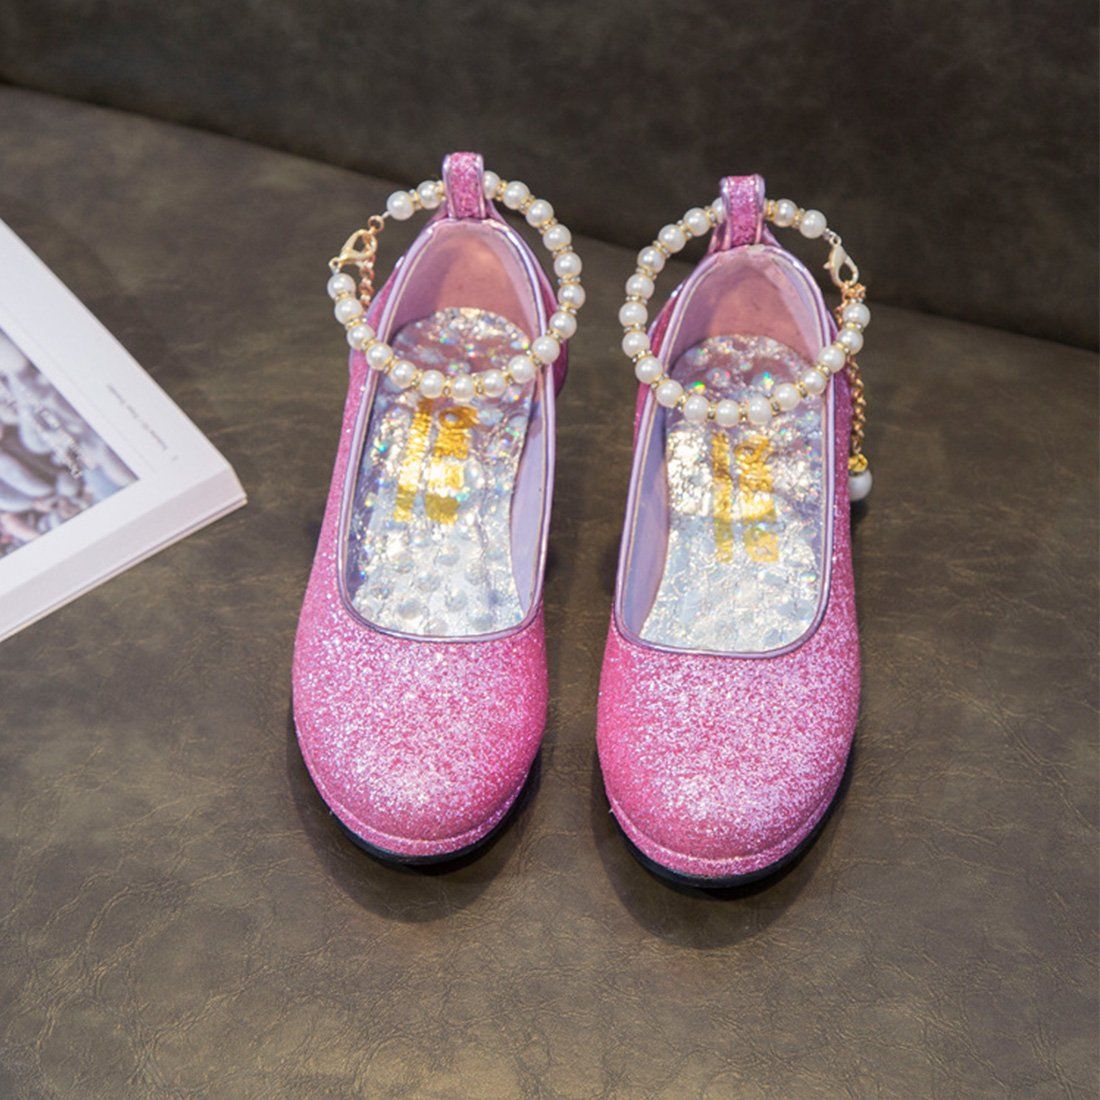 YIBLBOX Girls Kids Toddler Dress up Cosplay Princess Wedding Shoes Sequin Mary Jane Low Heel Shoes by YIBLBOX (Image #3)